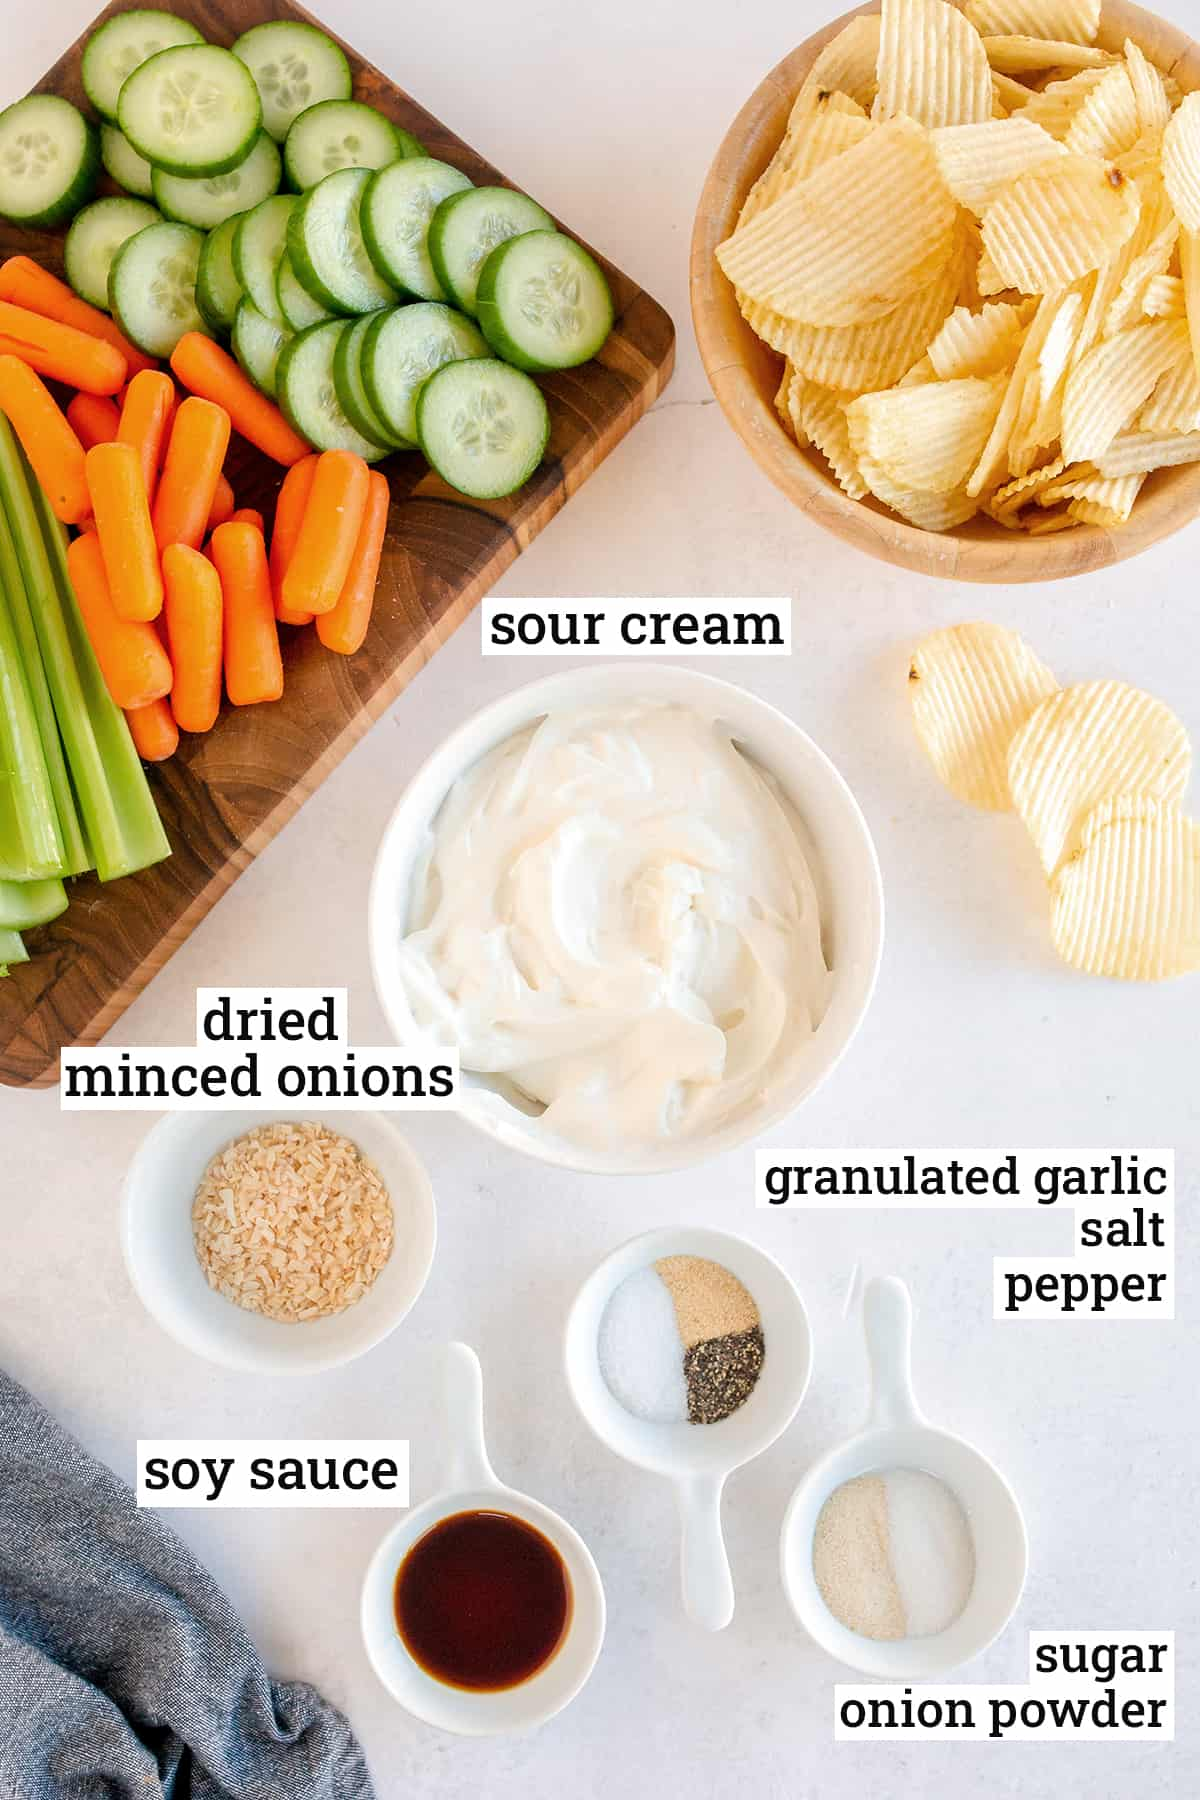 All the ingredients needed to make French Onion Dip from Scratch with text overlay.